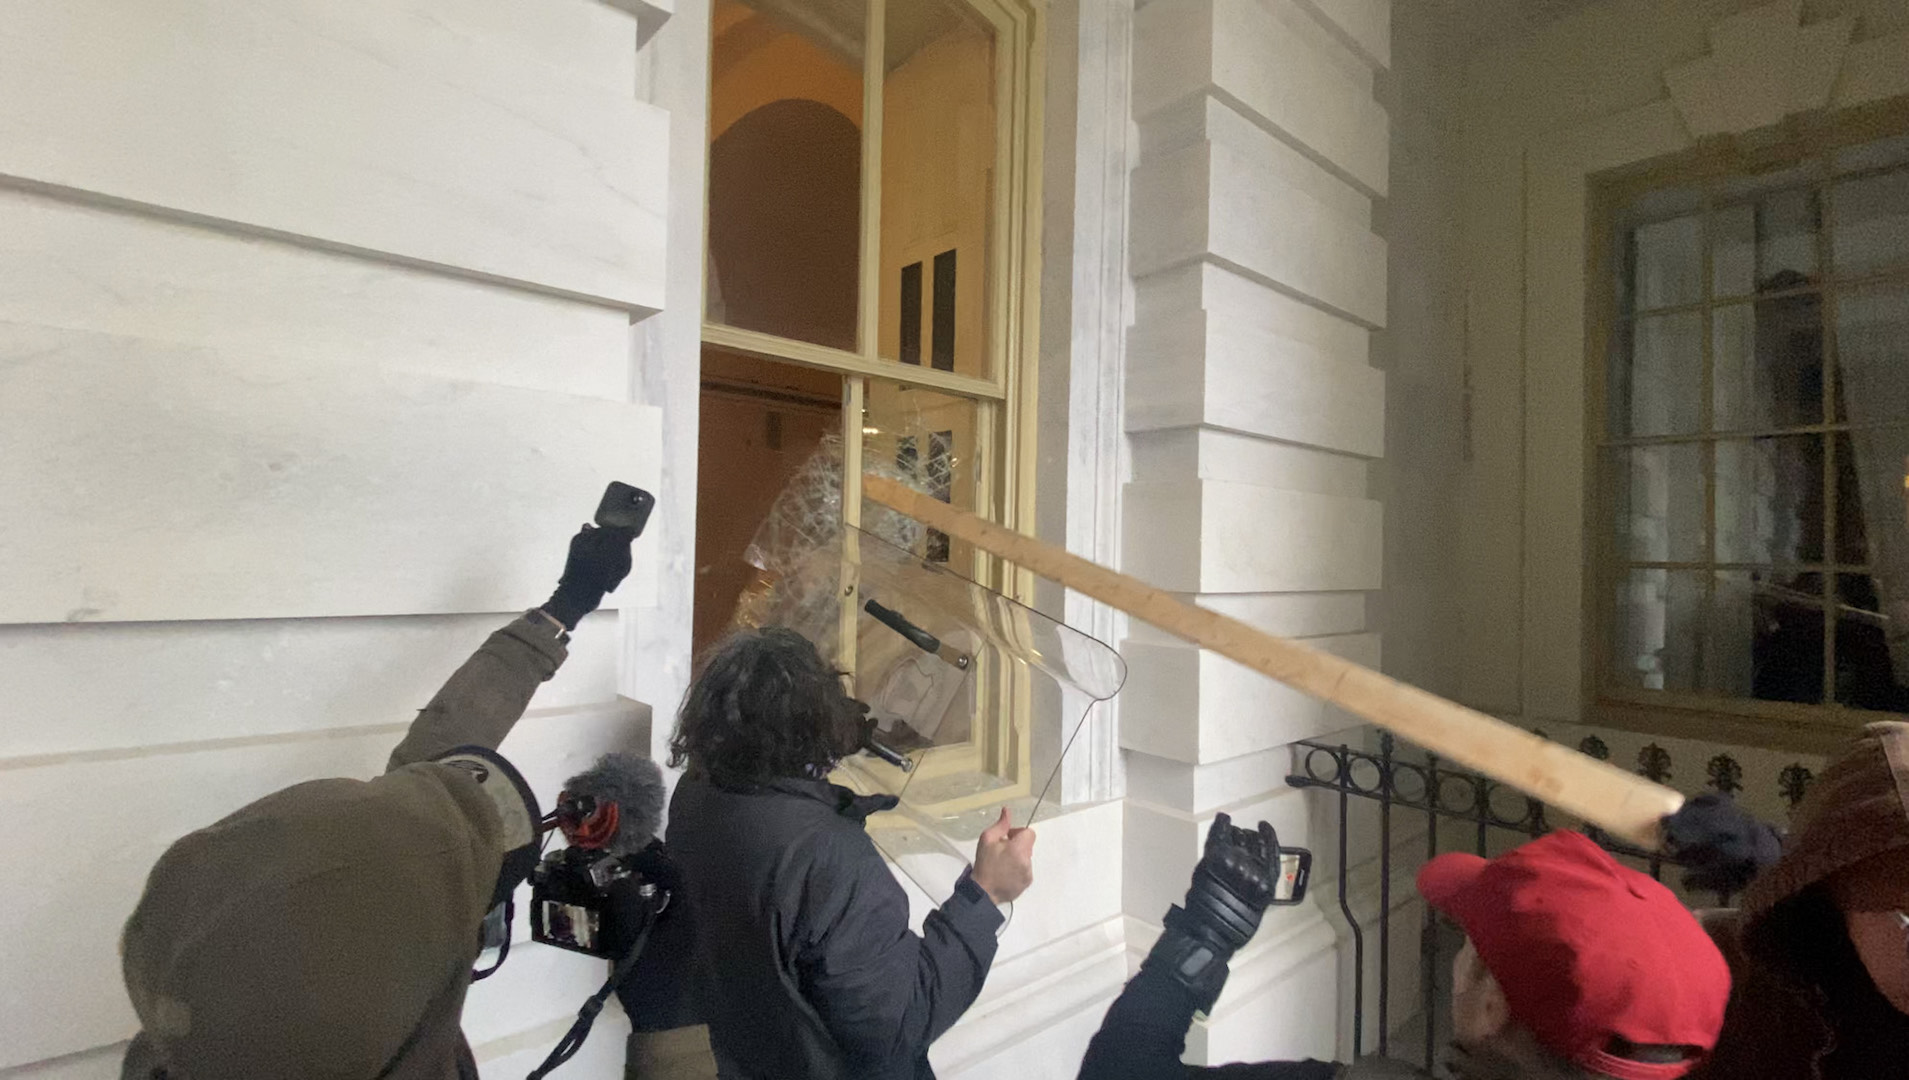 Pezzola using a riot shield to smash a Capitol Hill window. (Photo via Brendan Gutenschwager)